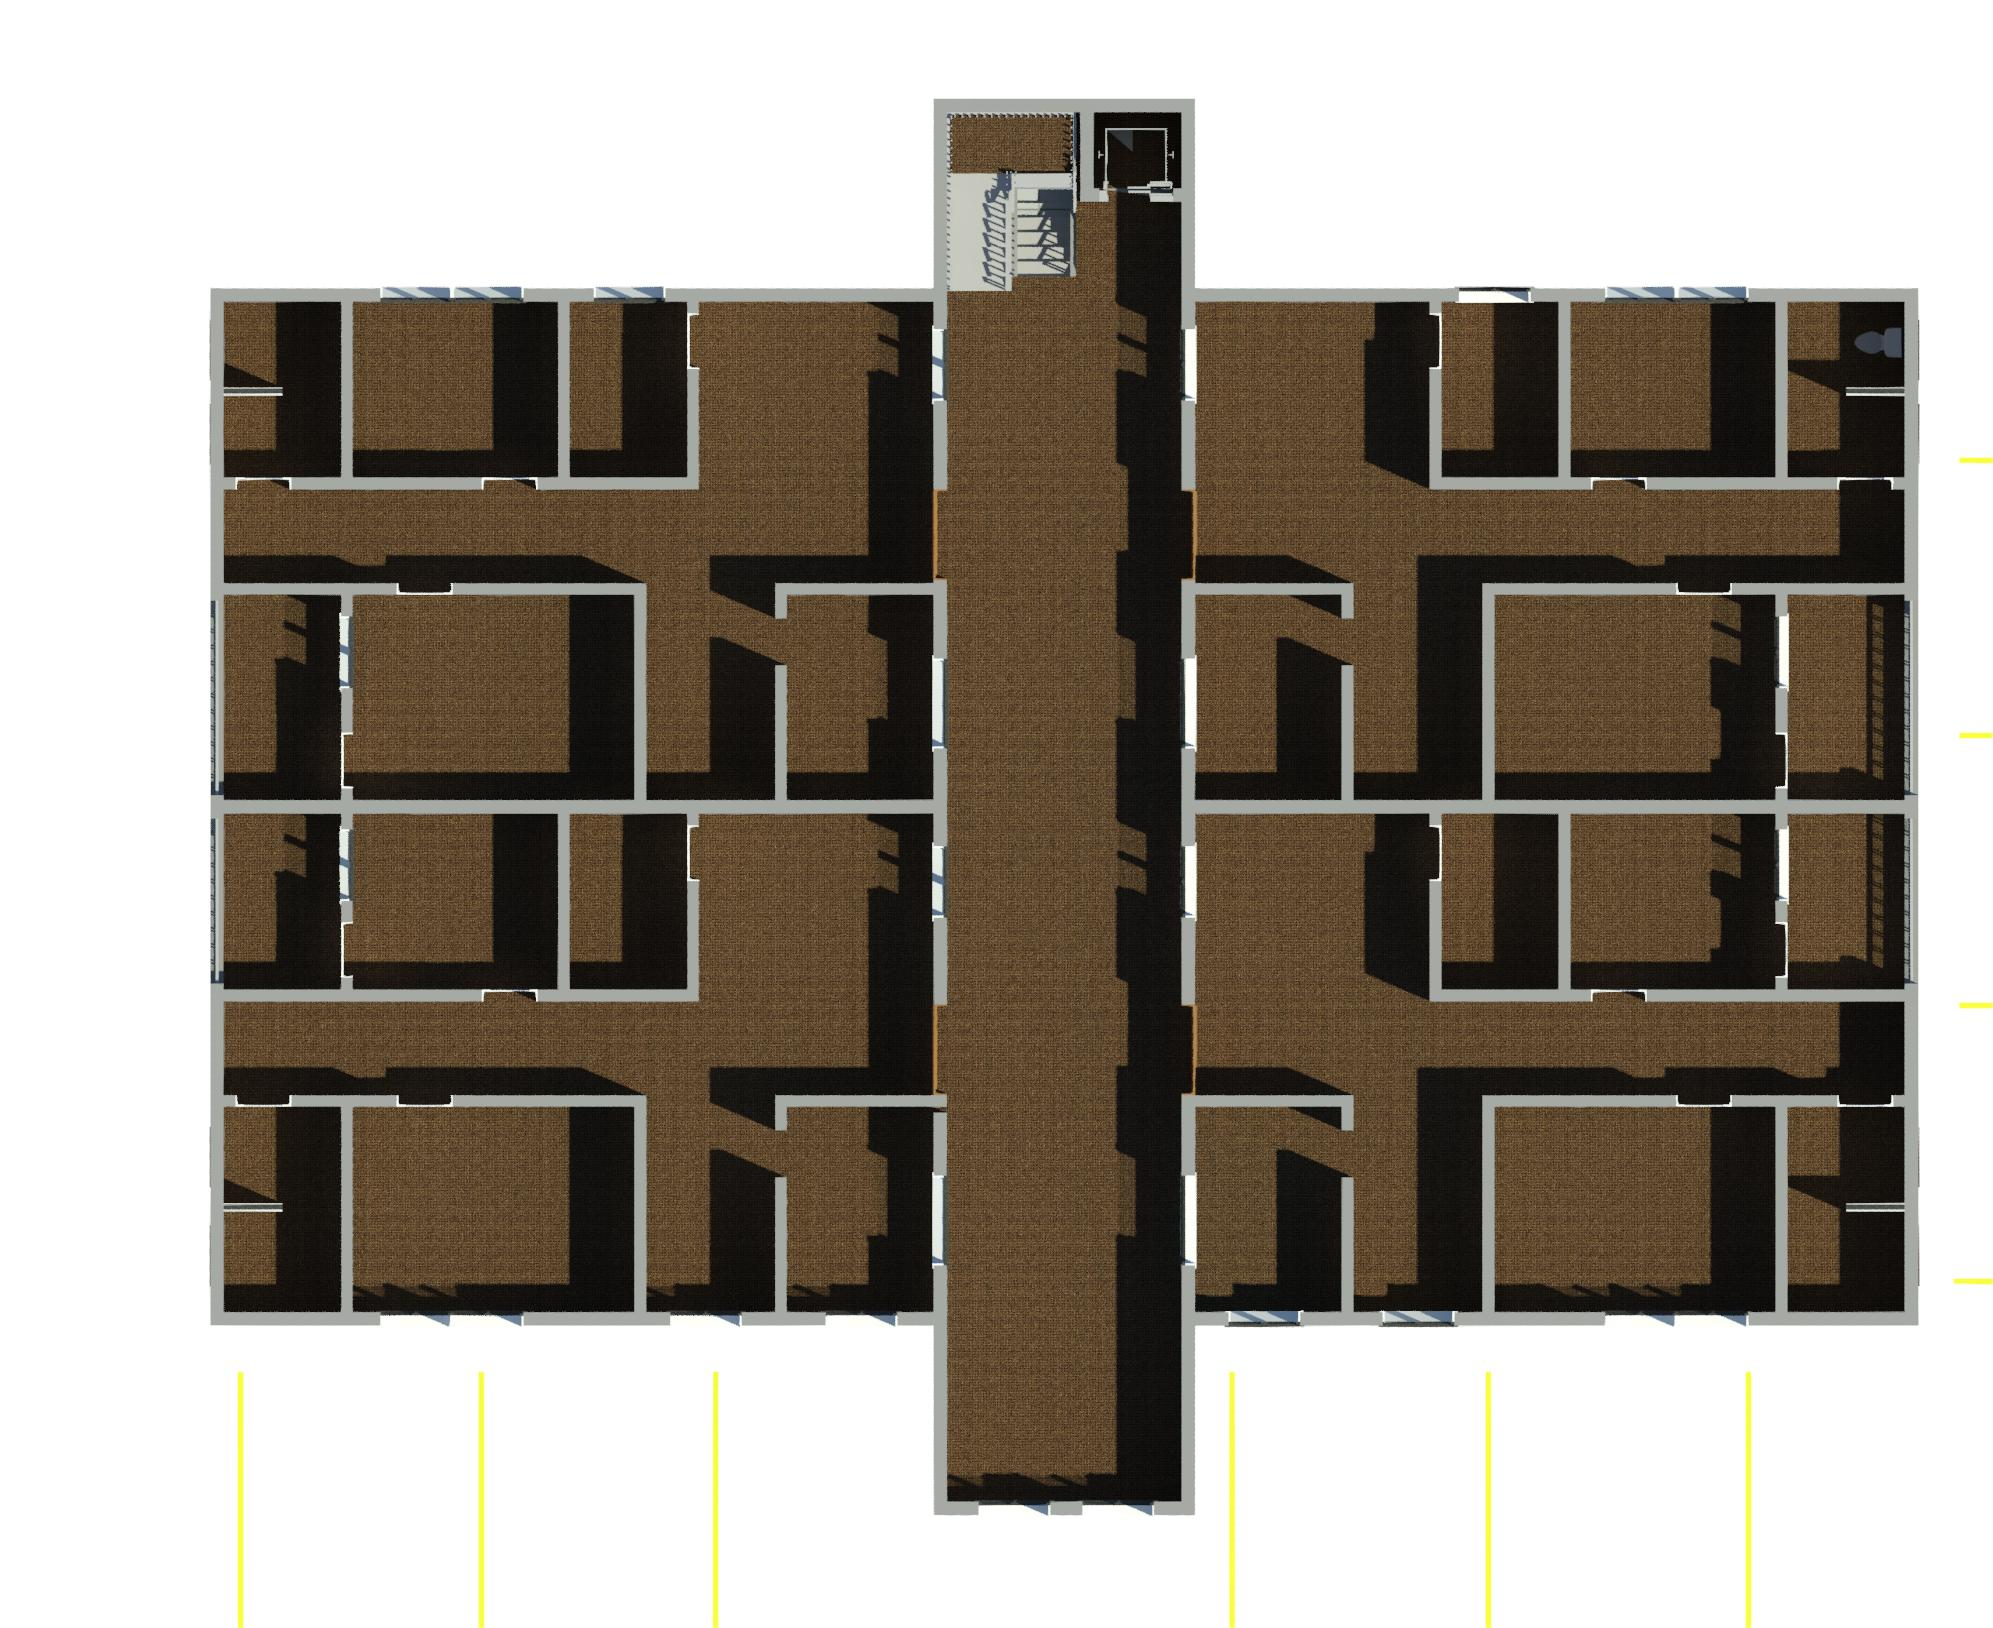 Plan of a building